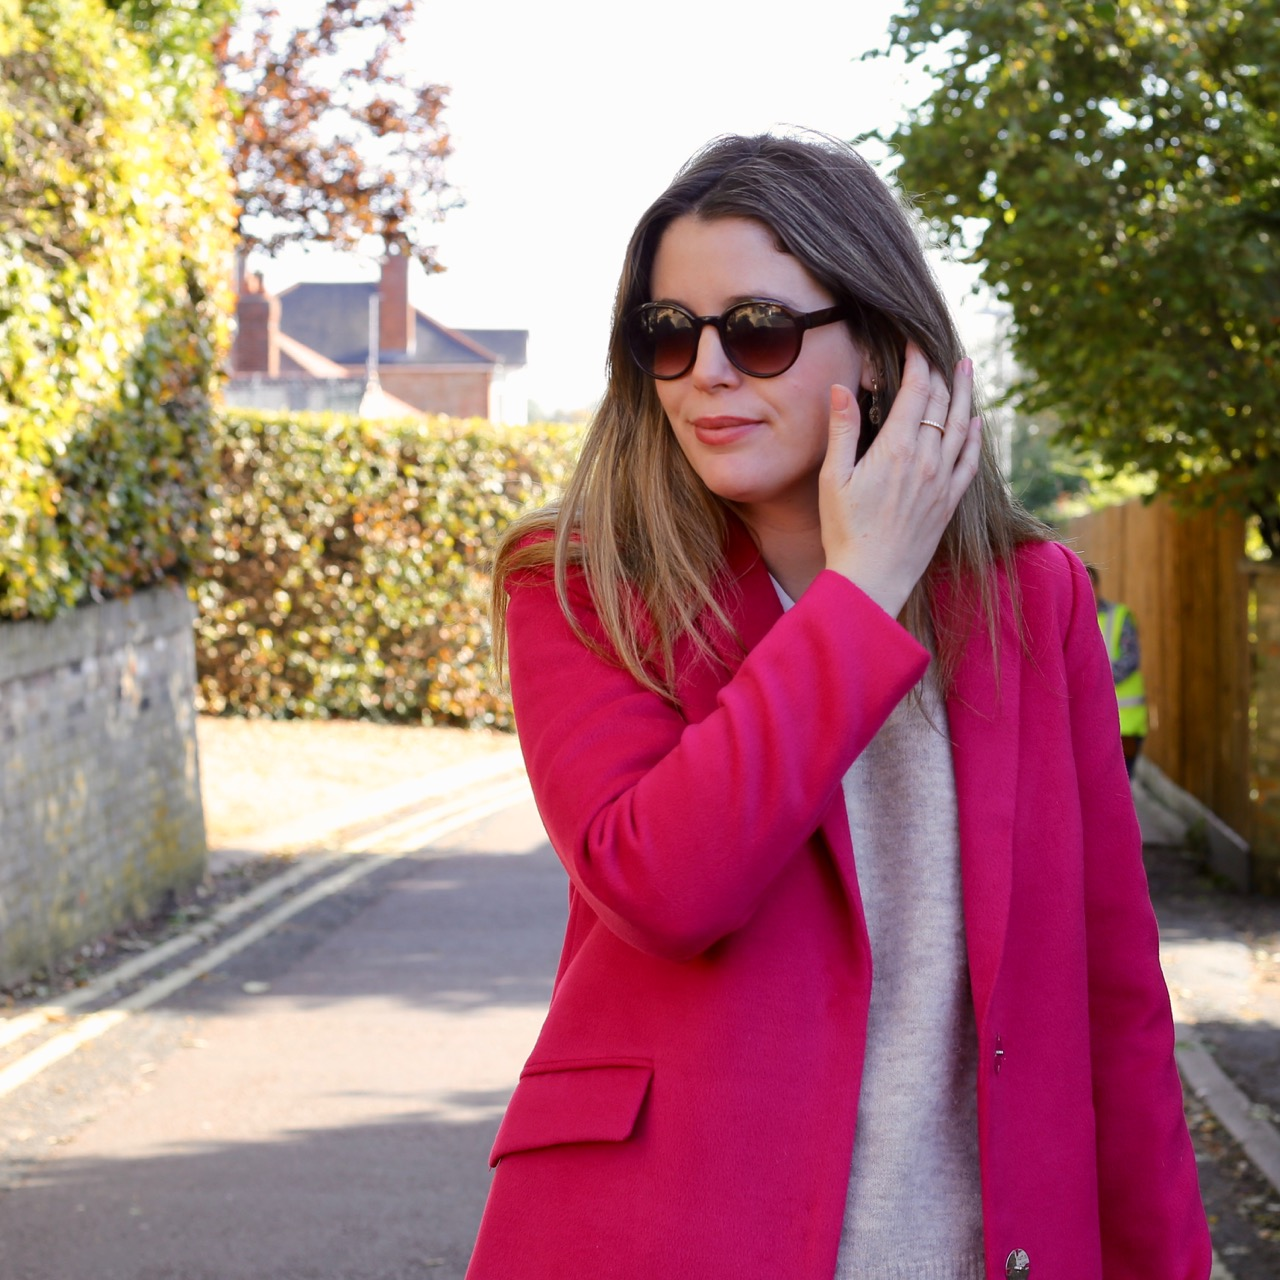 Wear pink and stop blending in